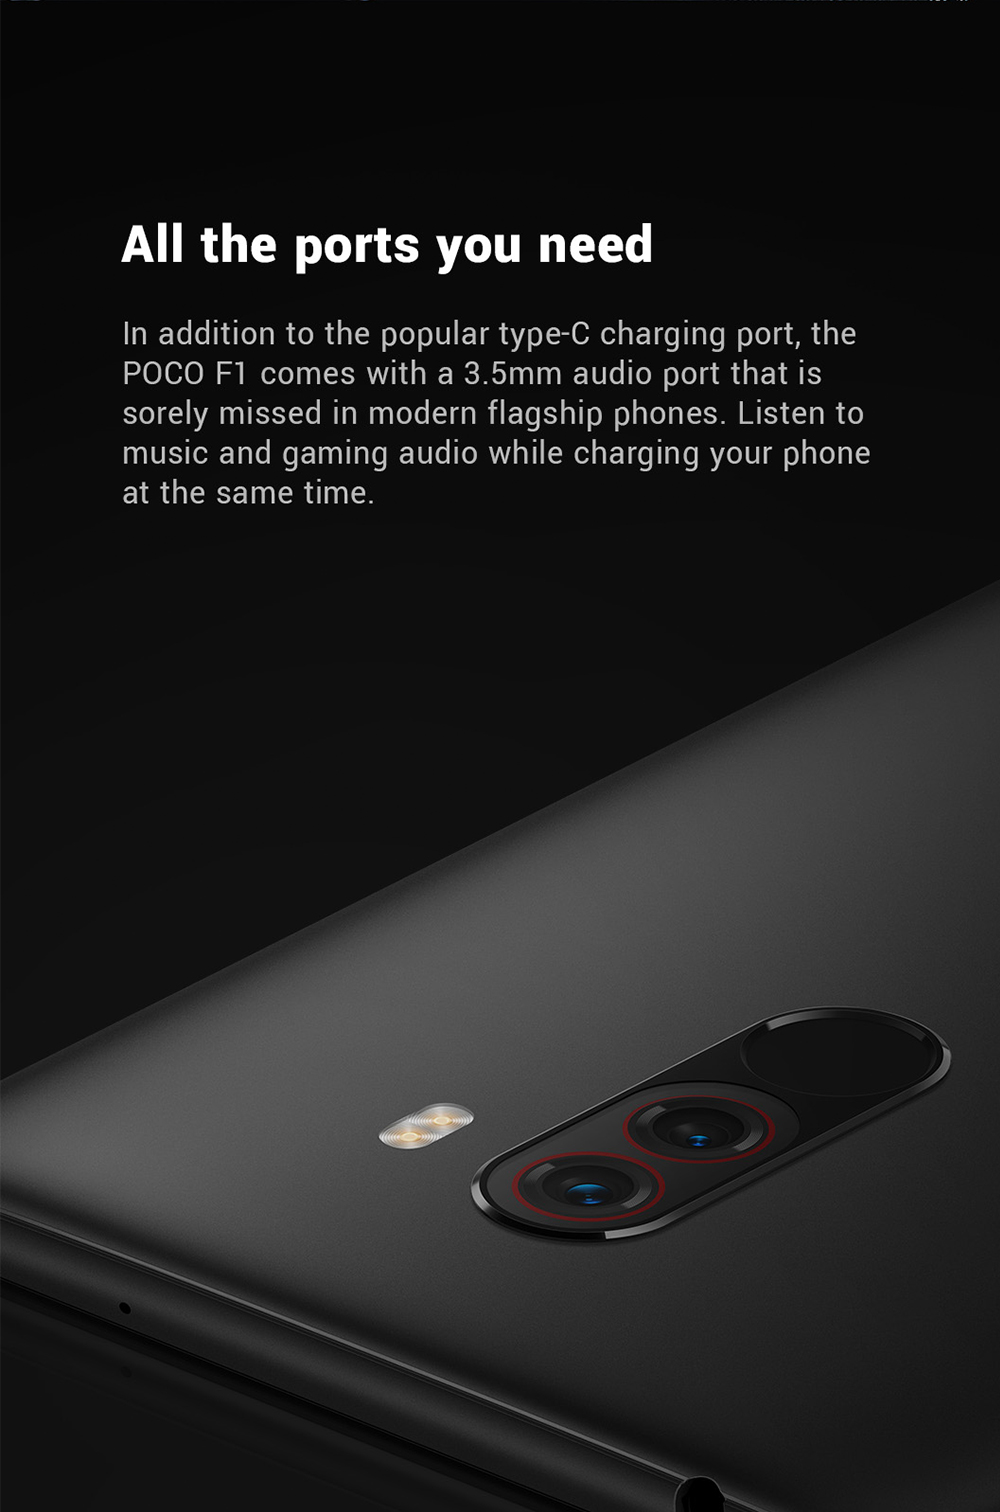 Refurbished Xiaomi Pocophone F1 4G Phablet 6.18 inch Android 8.1 Snapdragon 845 Octa Core 2.8GHz 6GB RAM 128GB ROM 20.0MP Front Camera Fingerprint Sensor 4000mAh Built-in- Graphite Black 6+128GB